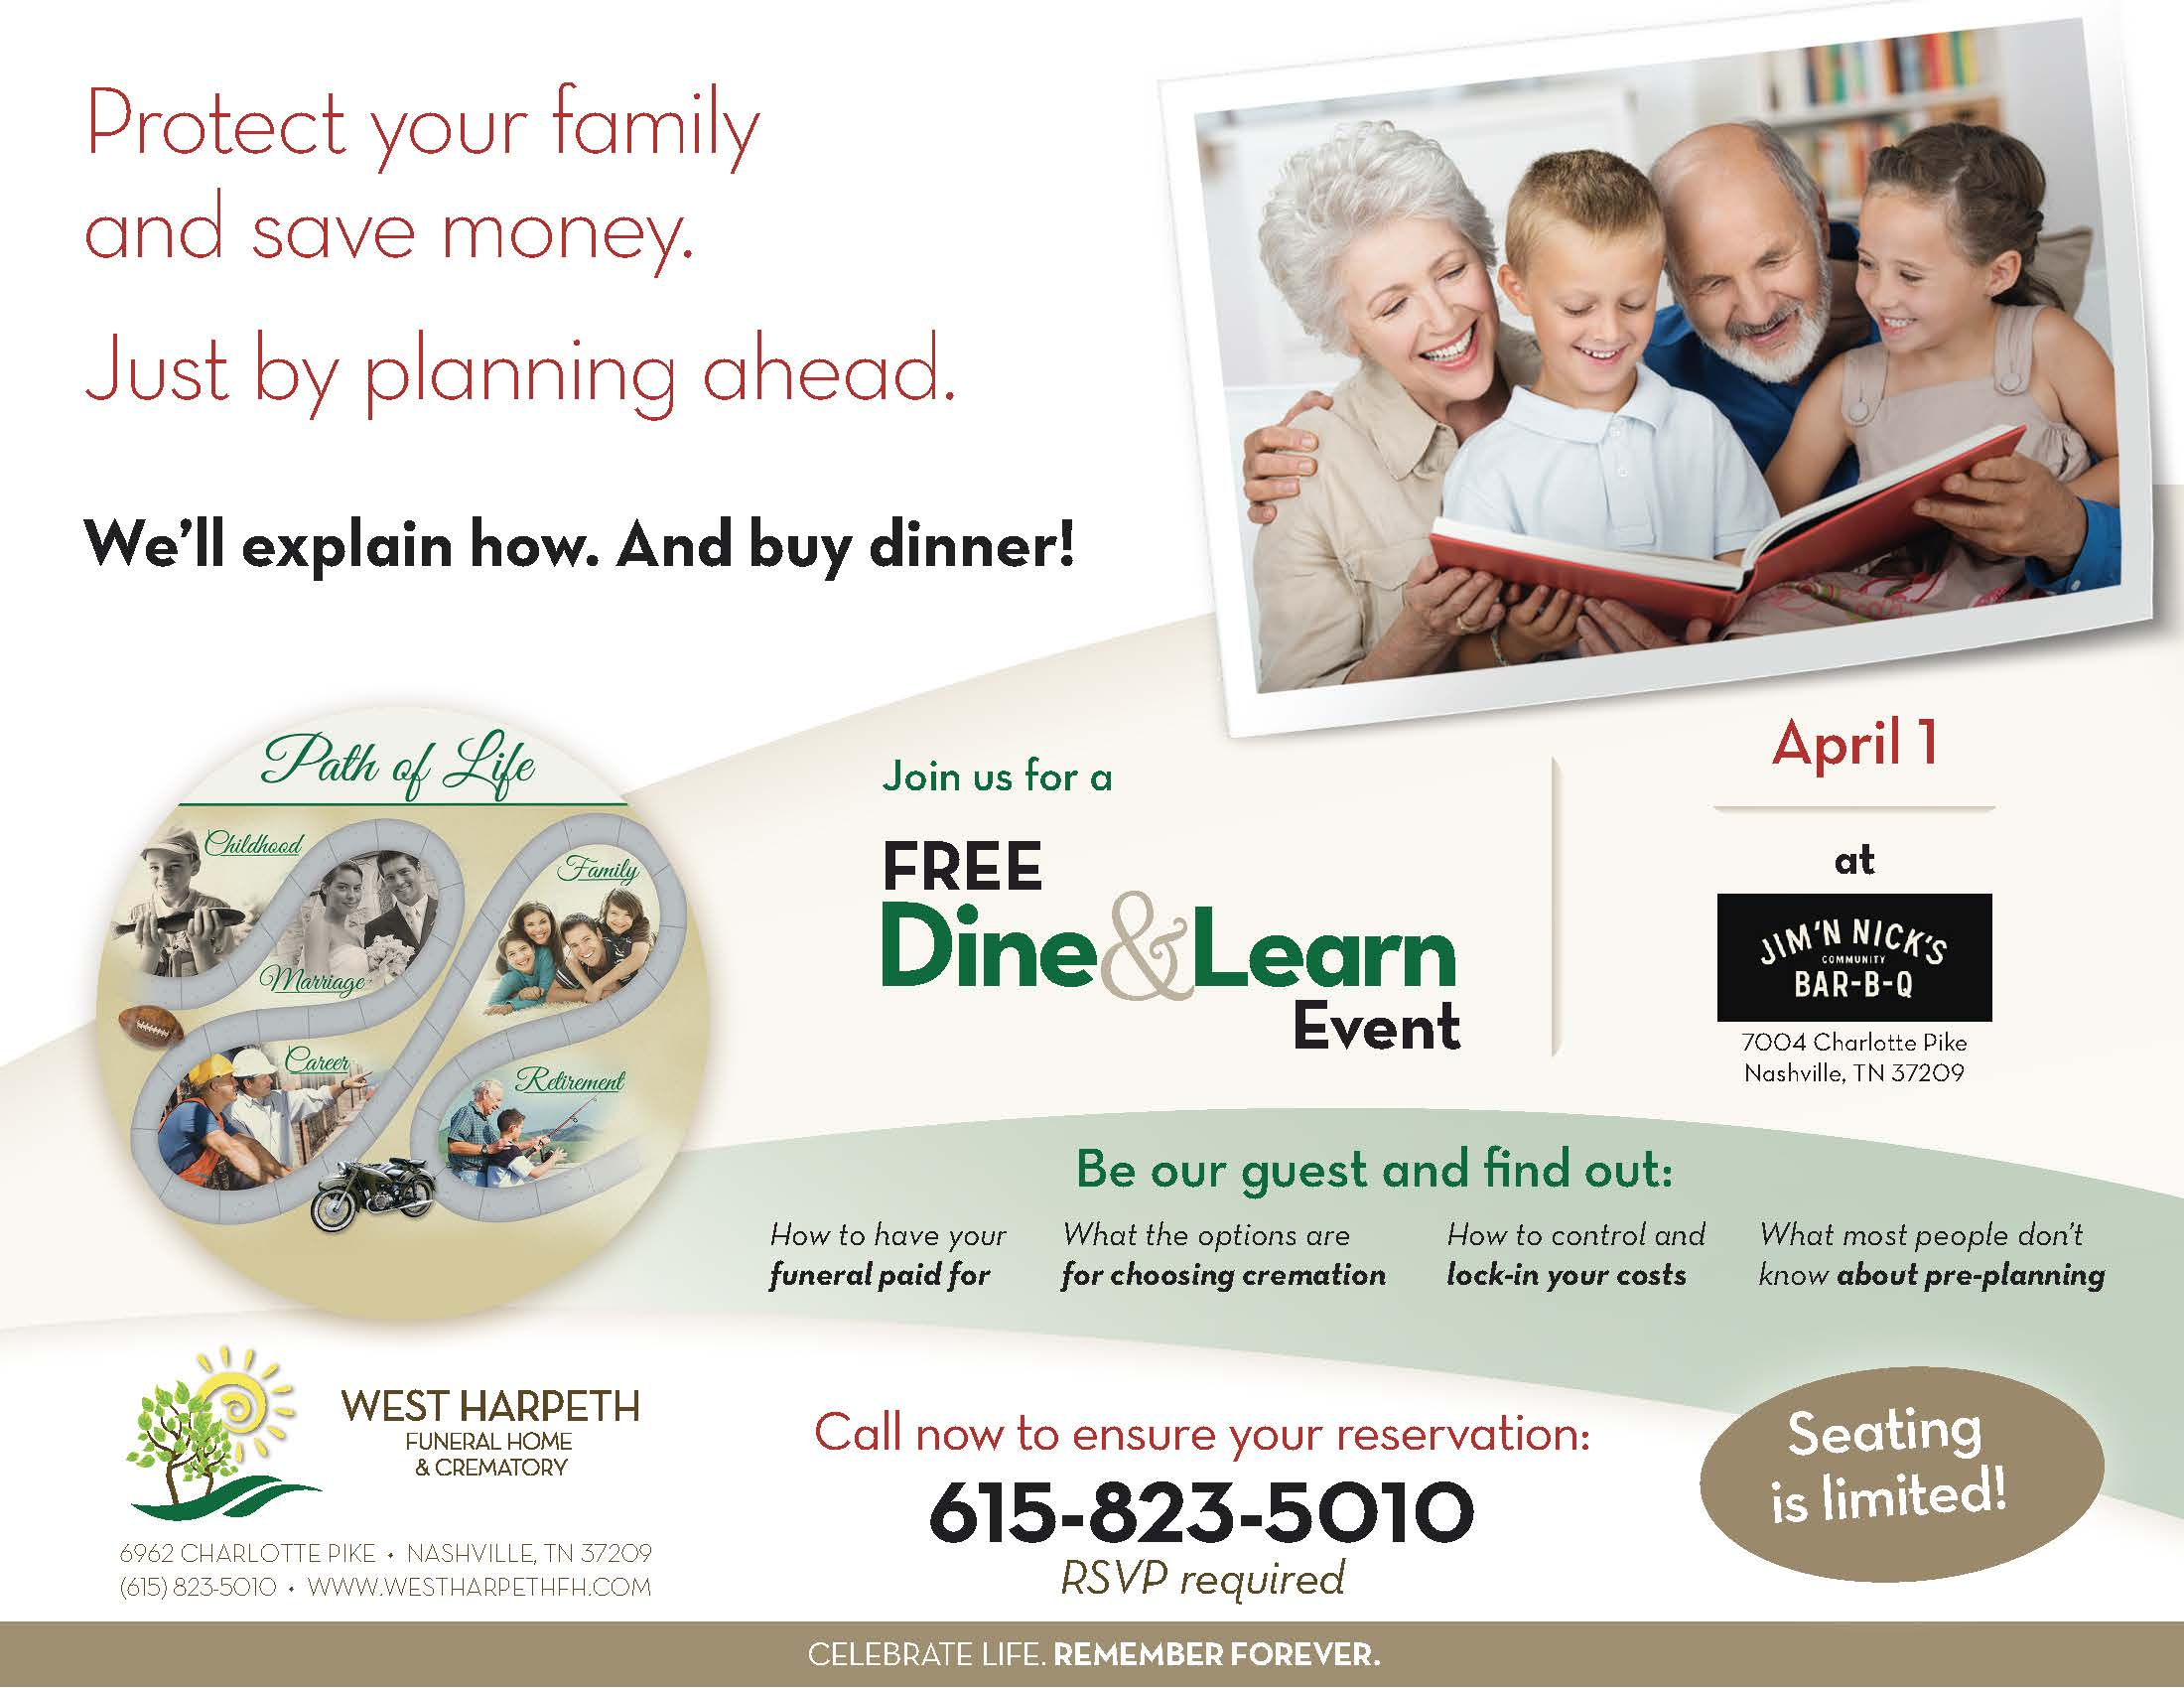 0011 FL WH Dine & Learn FLYER-WH-(Killed by BG 3.17)